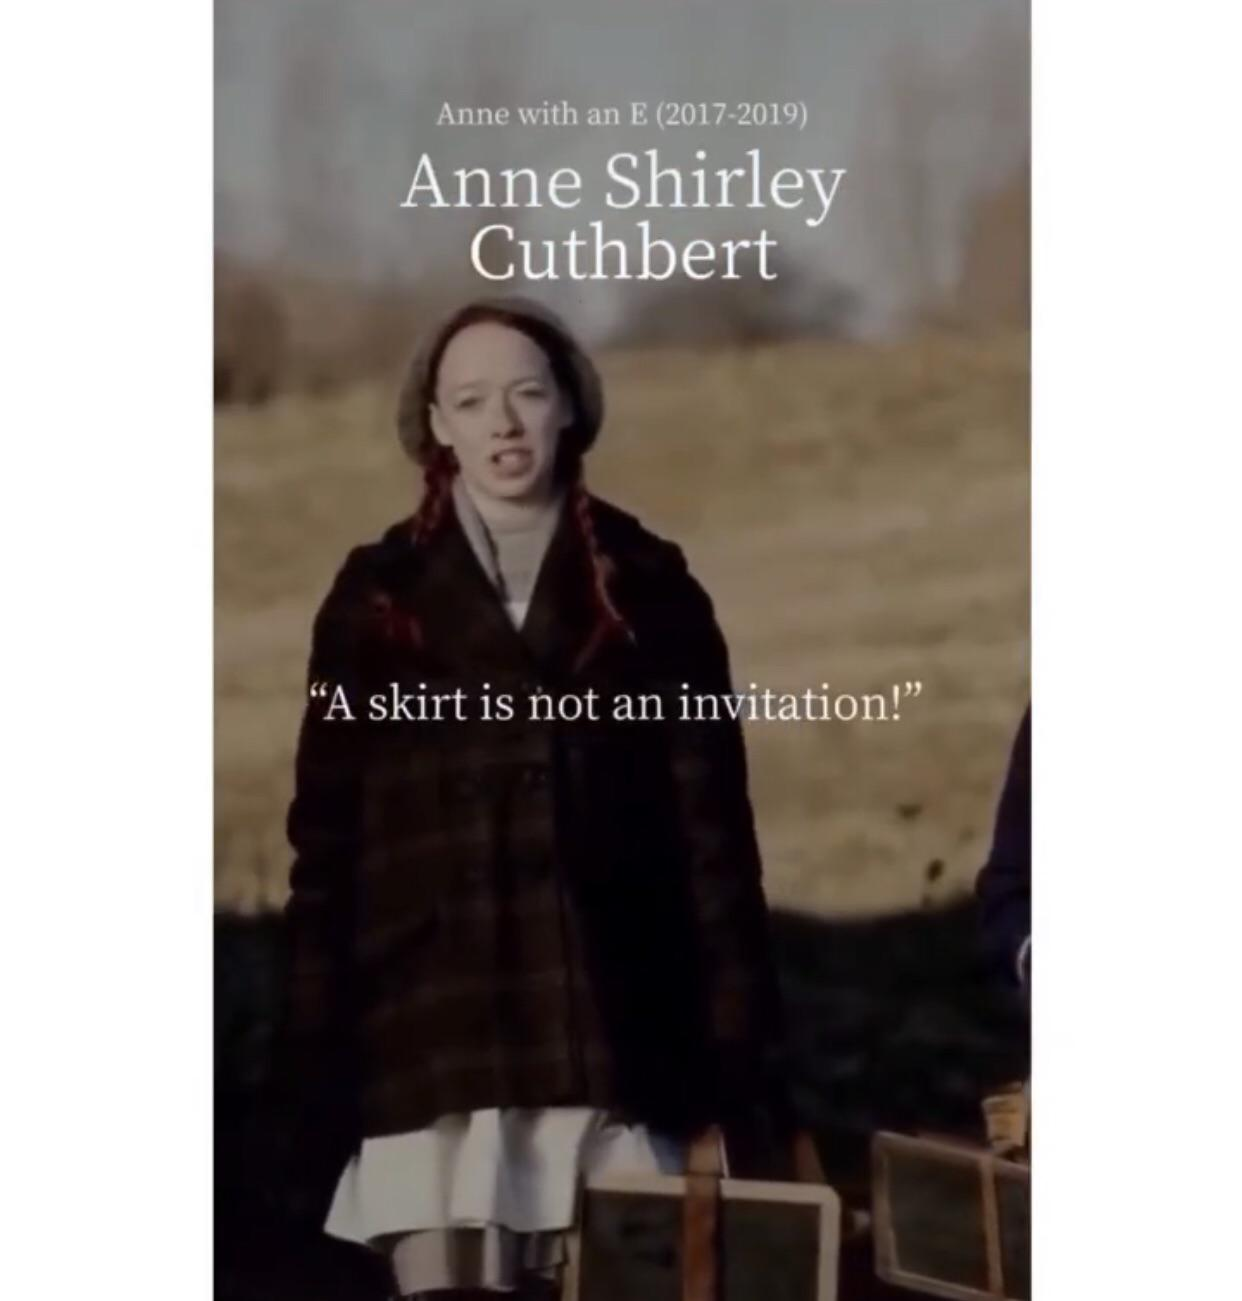 """A skirt is not an invitation!""- by Anne Shirley Cuthbert, from the film ""Anne with an E"". [1242 x 1301]"